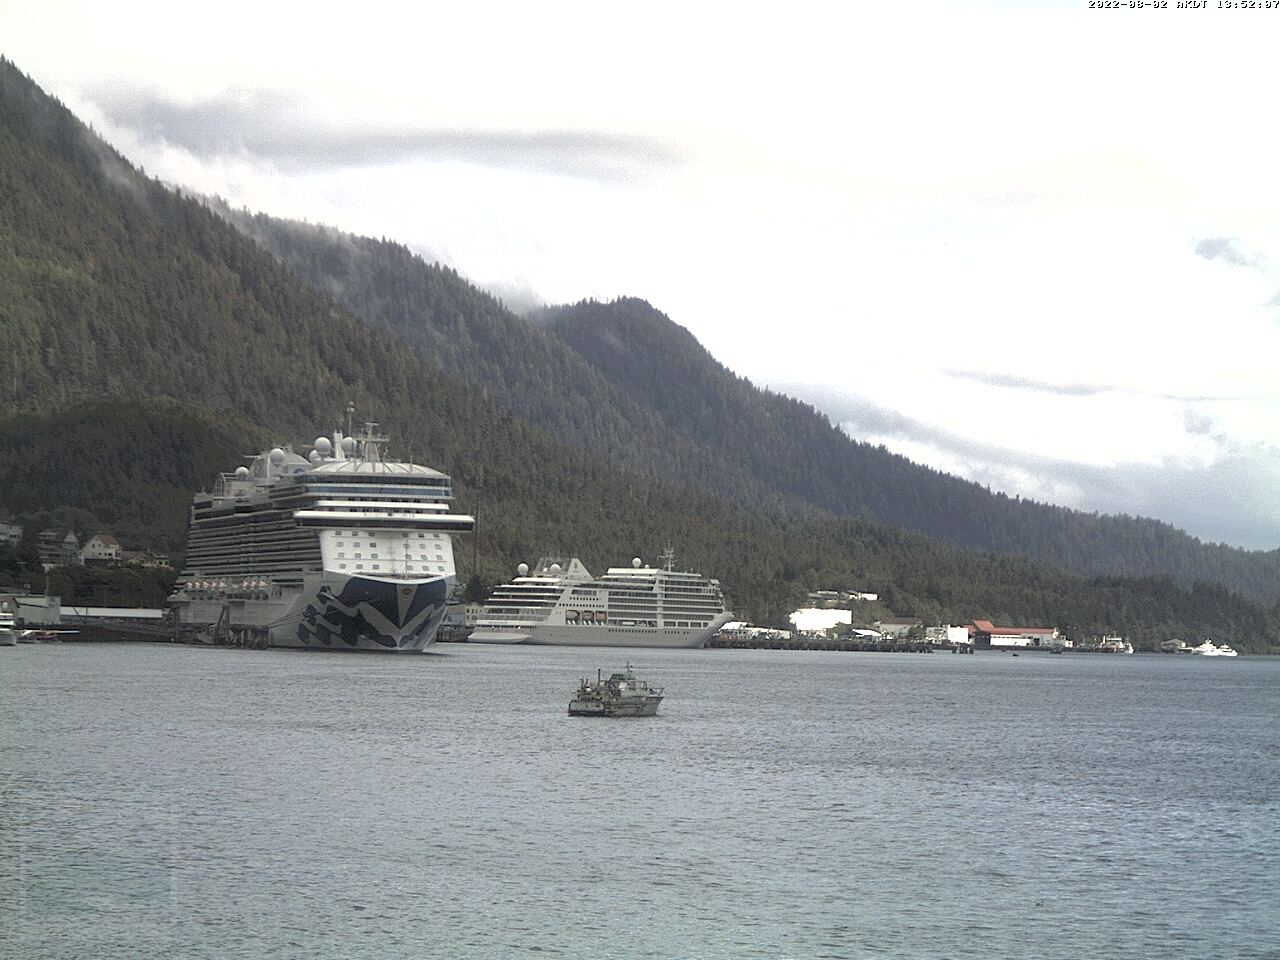 Current Ketchikan Webcam #3 Mega-View Image